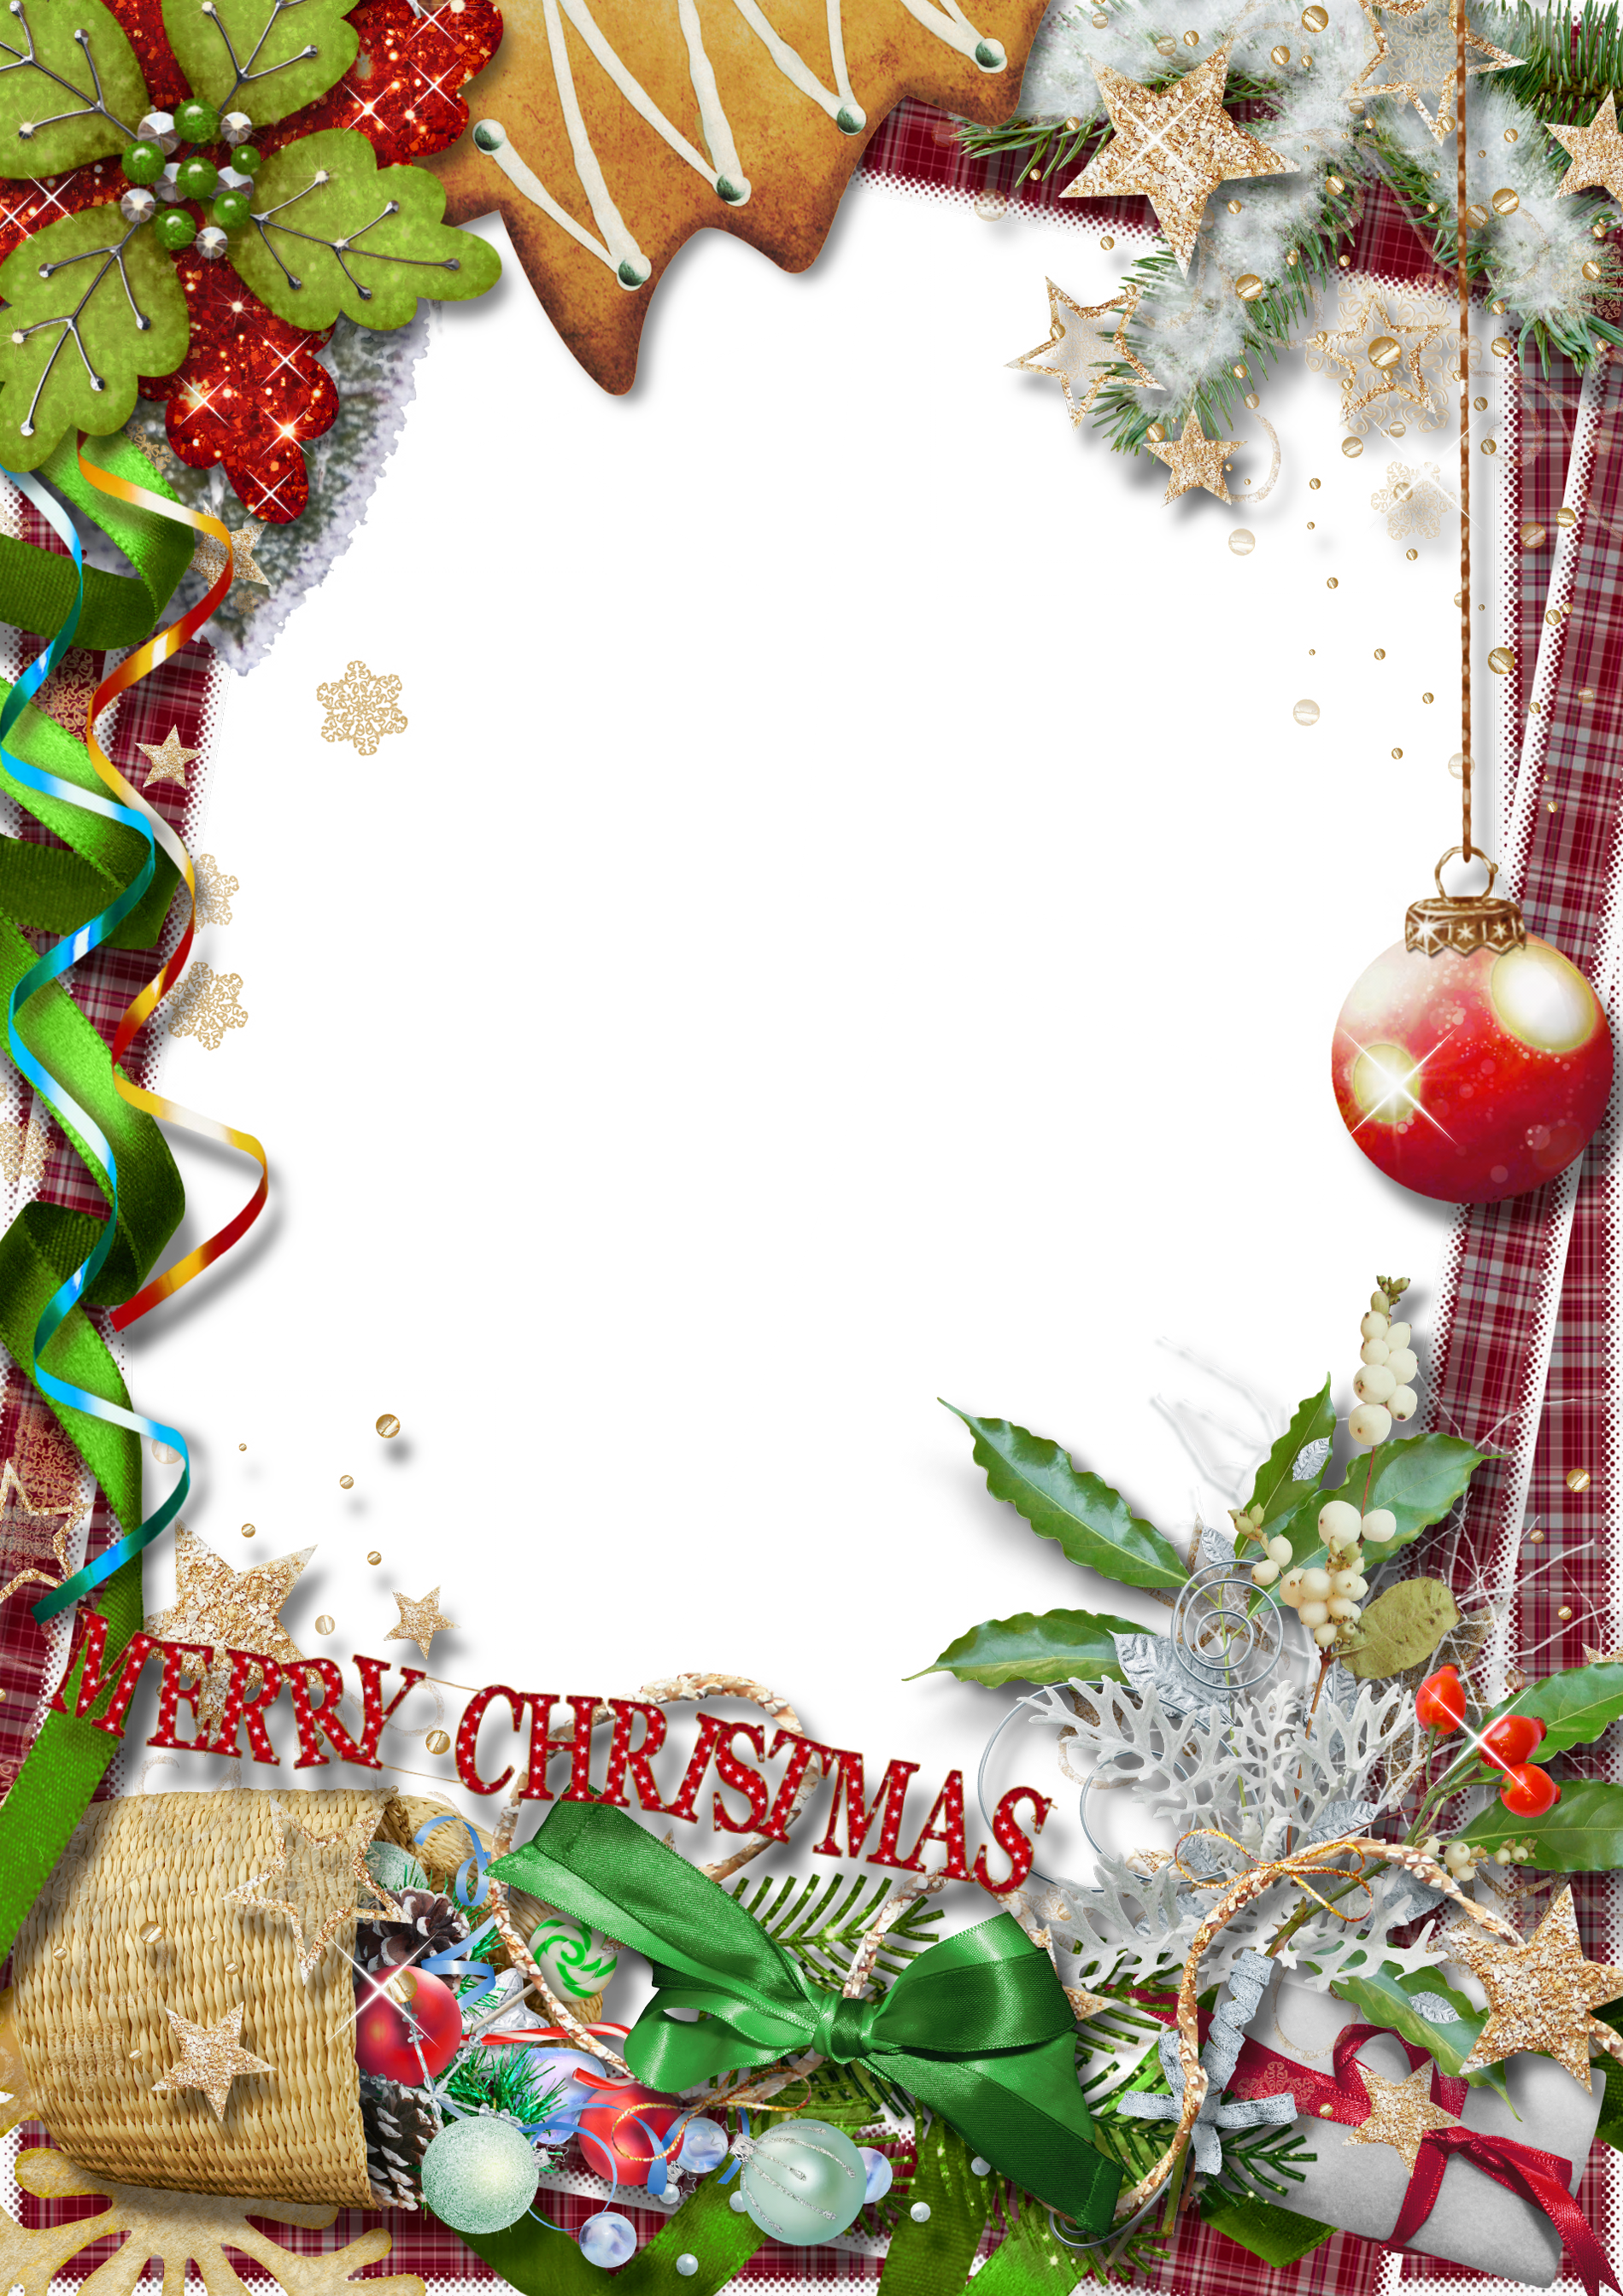 Merry christmas frames and borders png. Photo frame with green